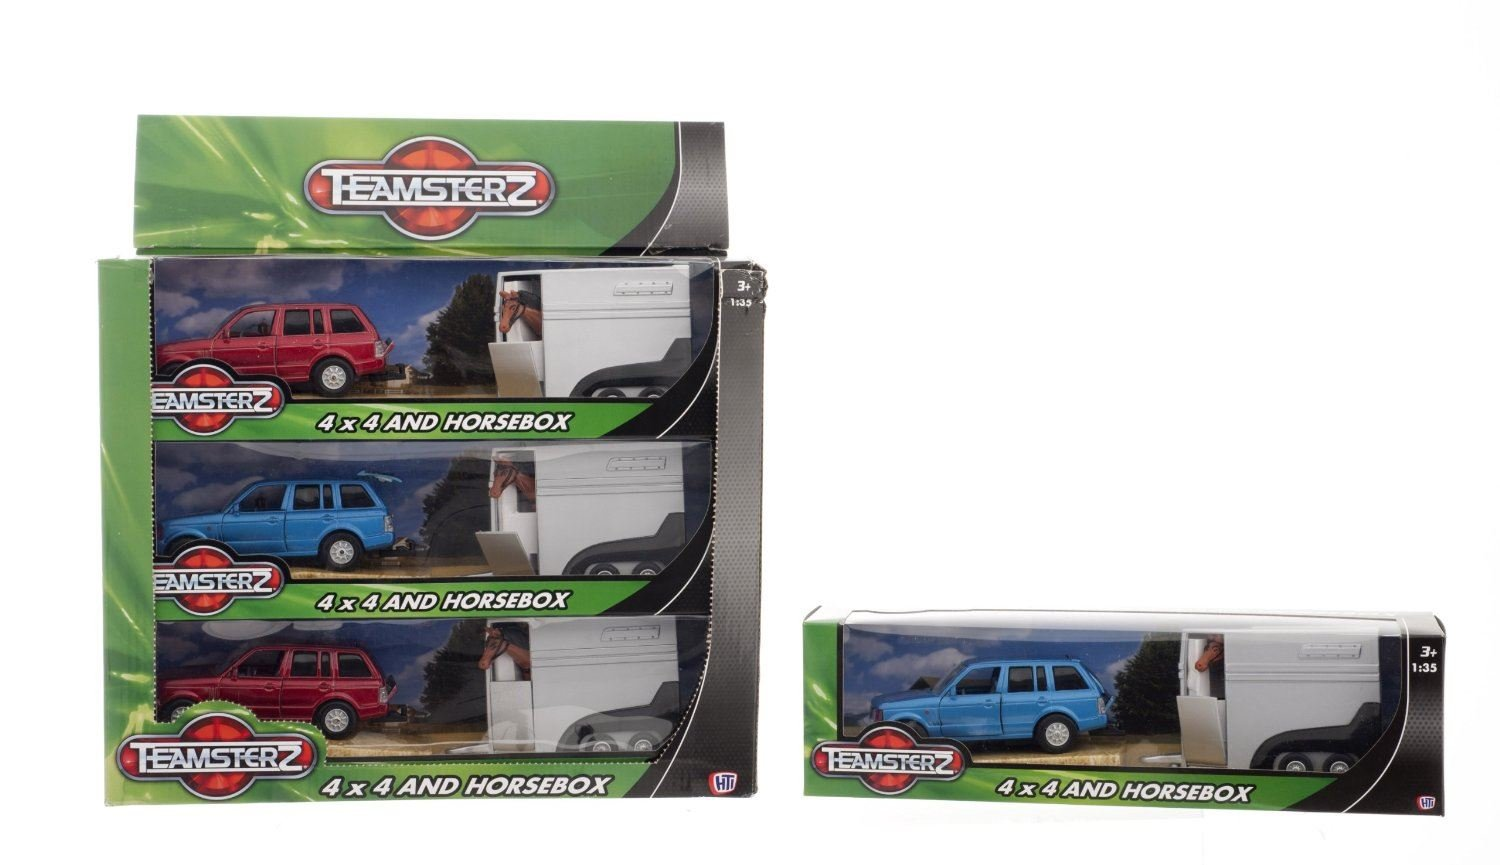 Teamsterz 4x4 Vehicle with Horse Box Trailer Toy Model HTI